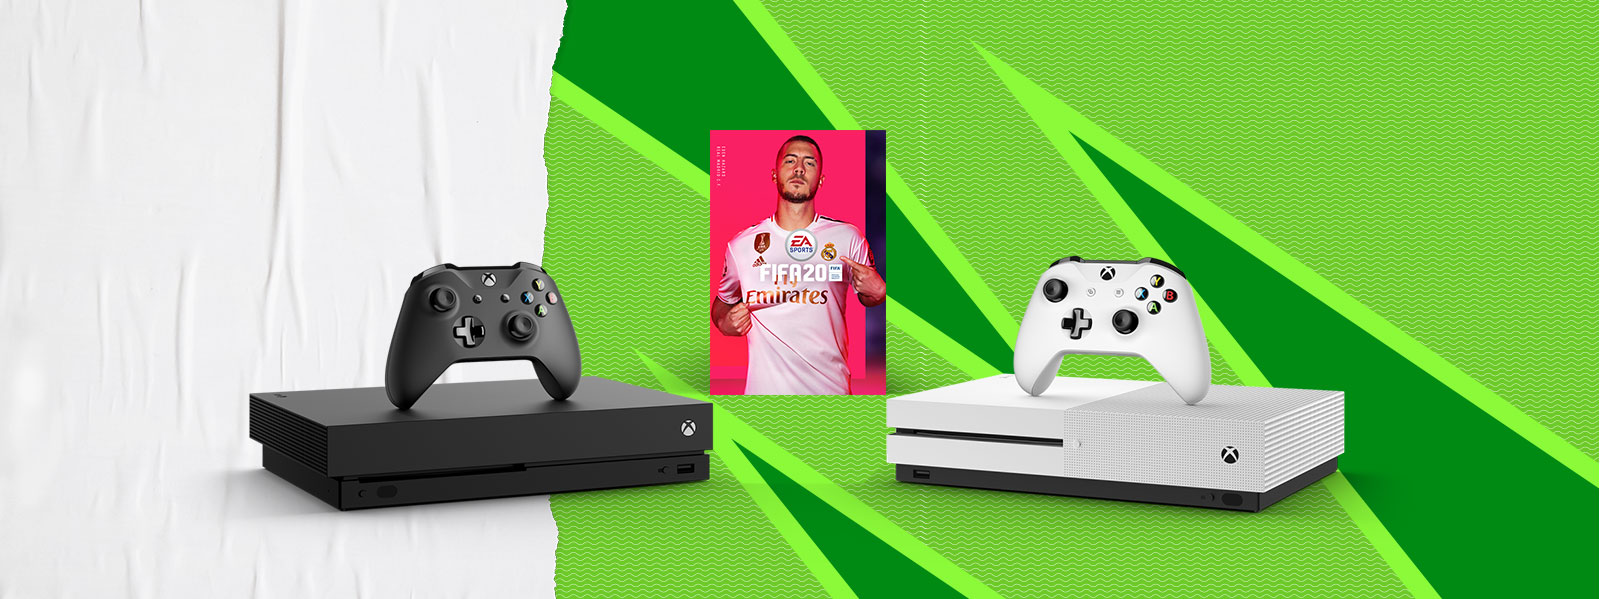 Xbox One X and Xbox One S with Fifa boxshot on a paper textured background